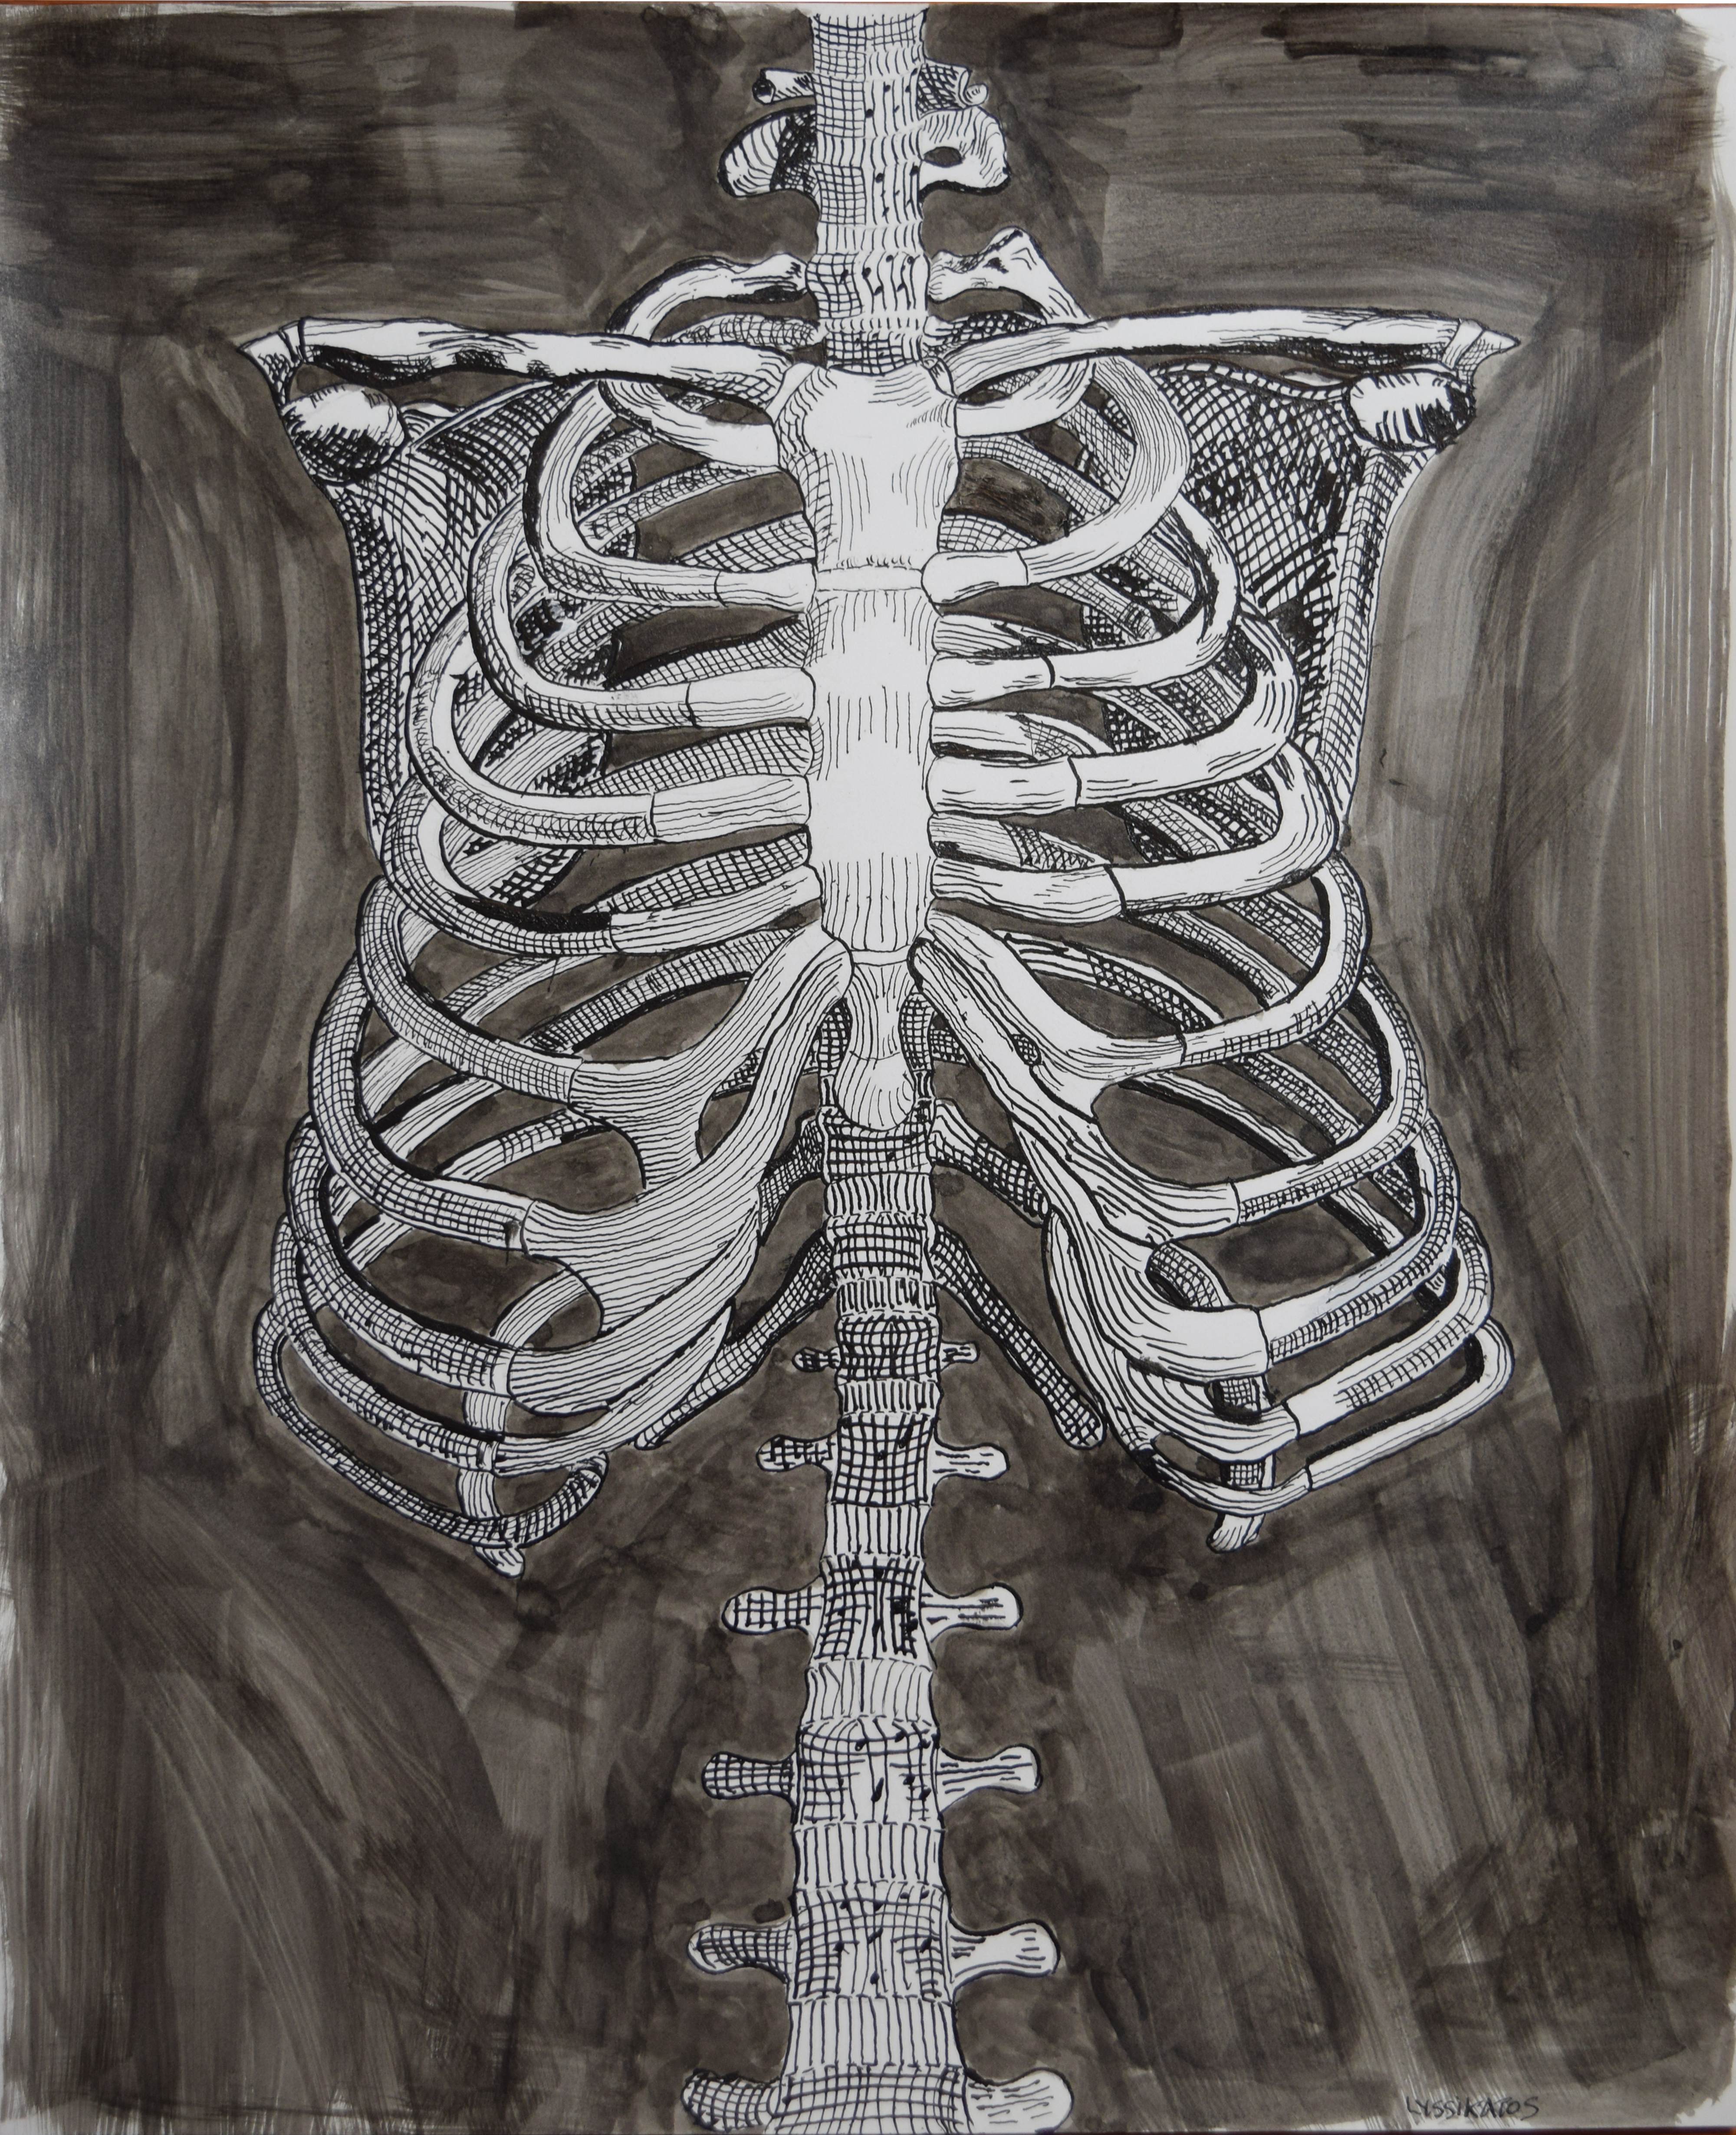 Rib Cage - Ink on vellum - 11 x 14 in.